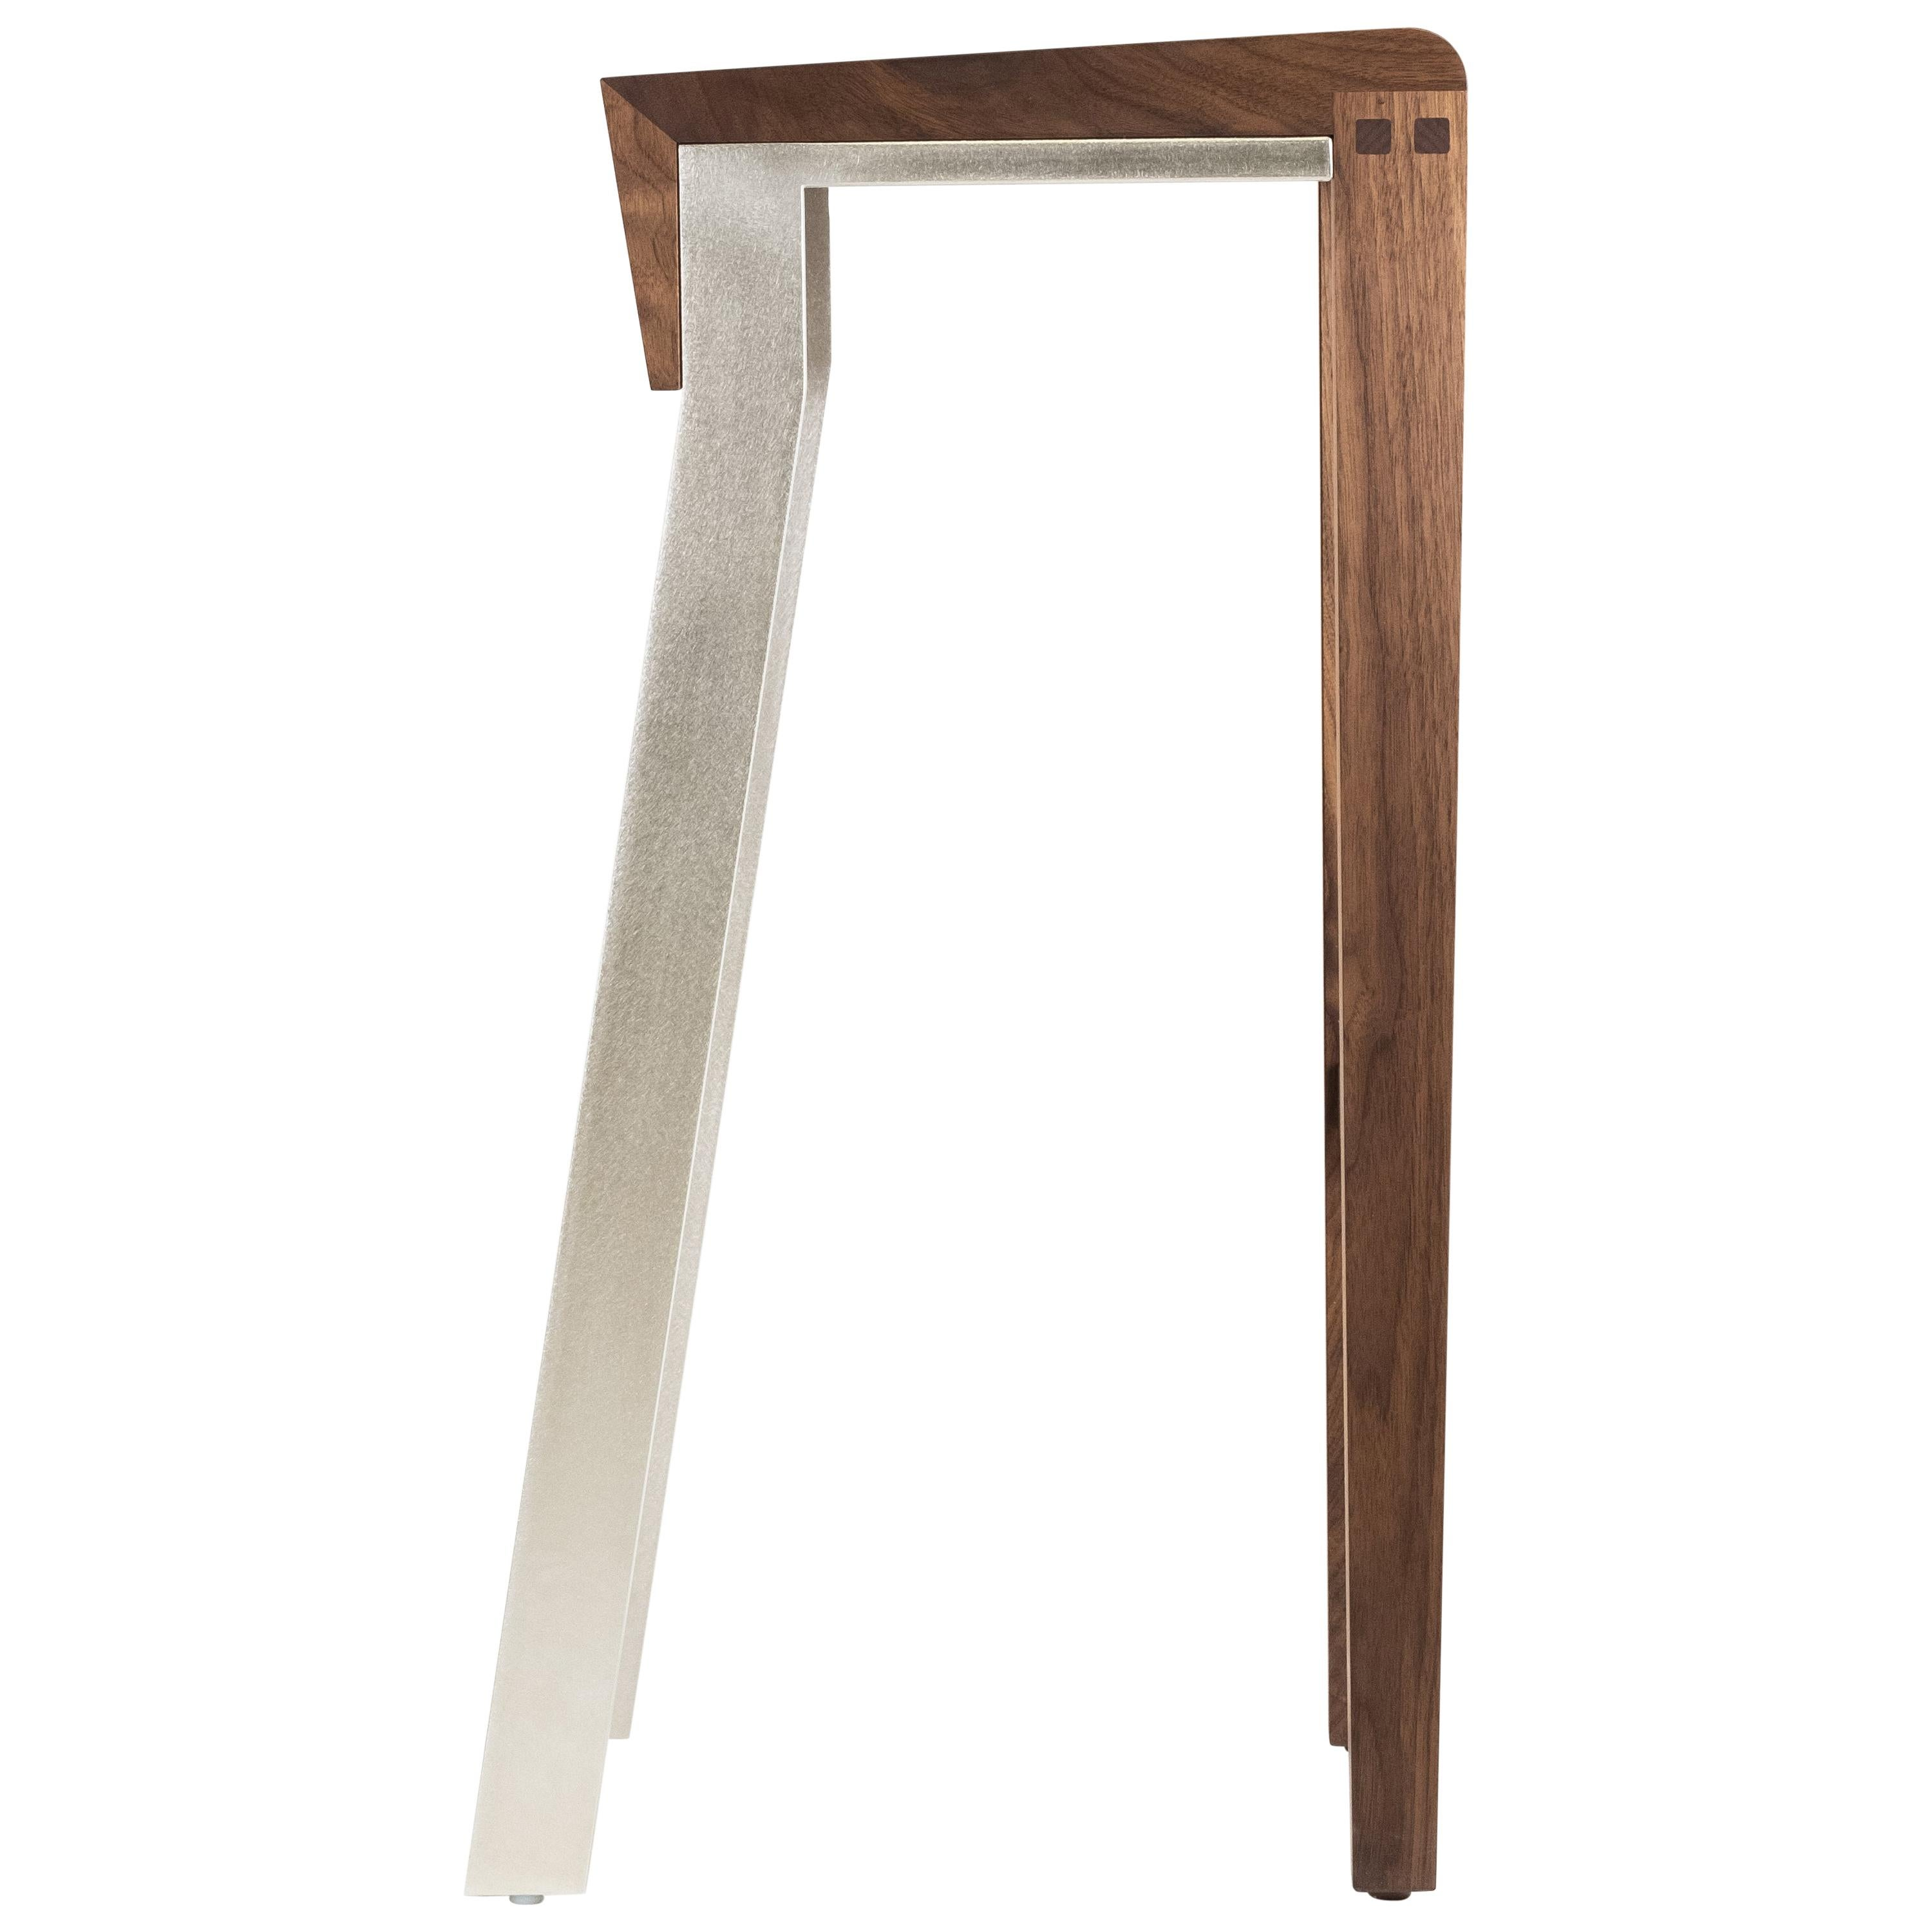 Contemporary Bar Stool Walnut or Oak Counter Stool by Stacklab